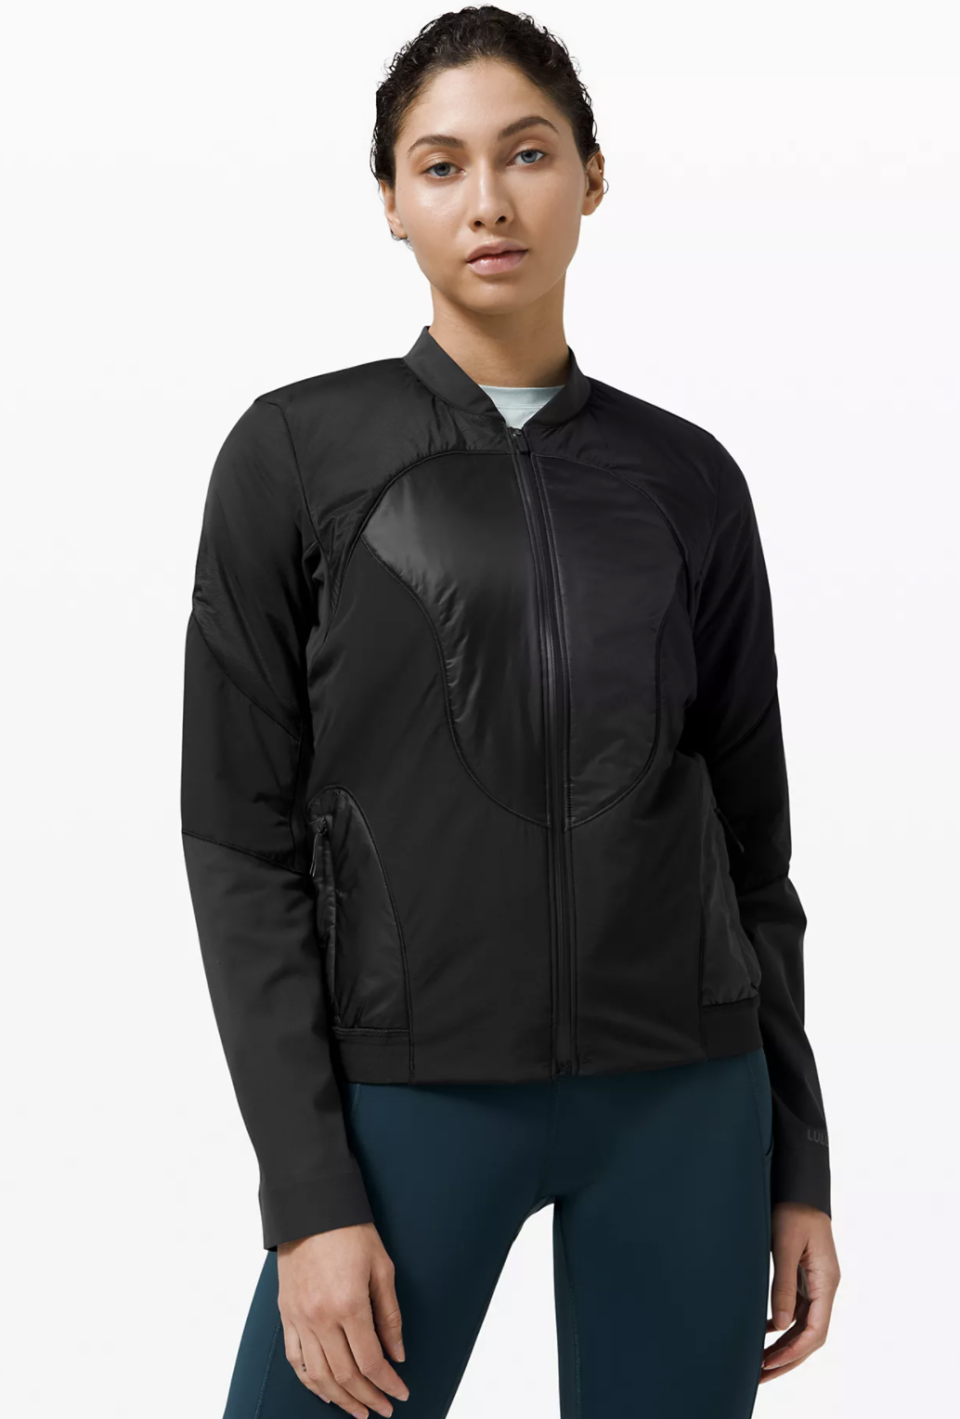 Polar Pace Run Jacket - Lululemon, $179 (originally $298)